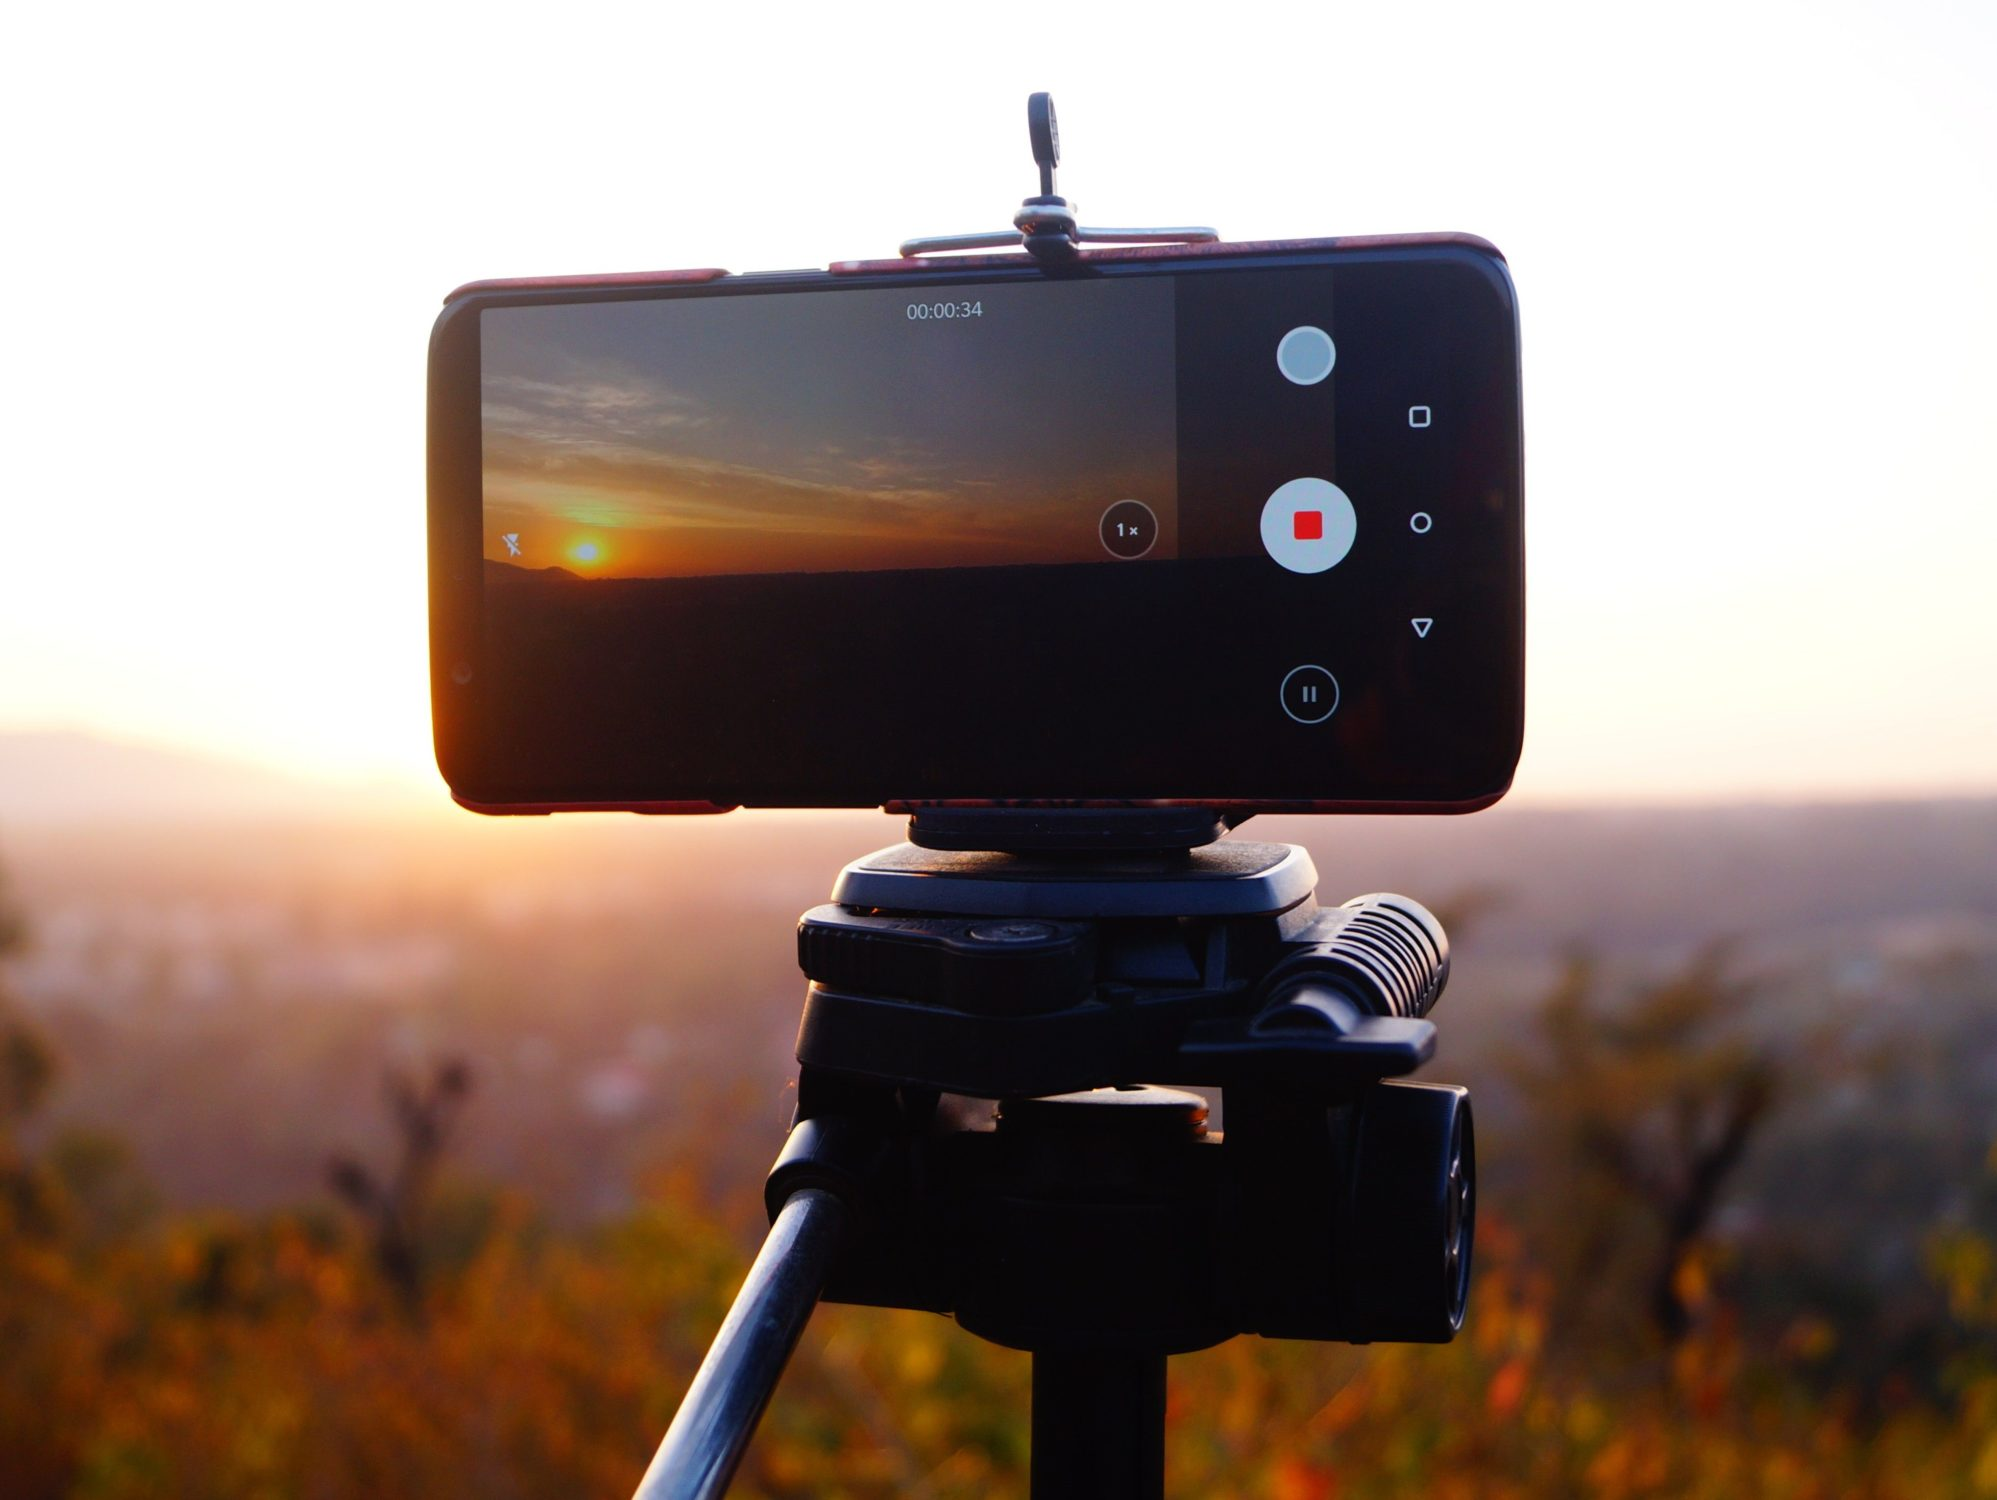 How to create a time-lapse video of a sunset?